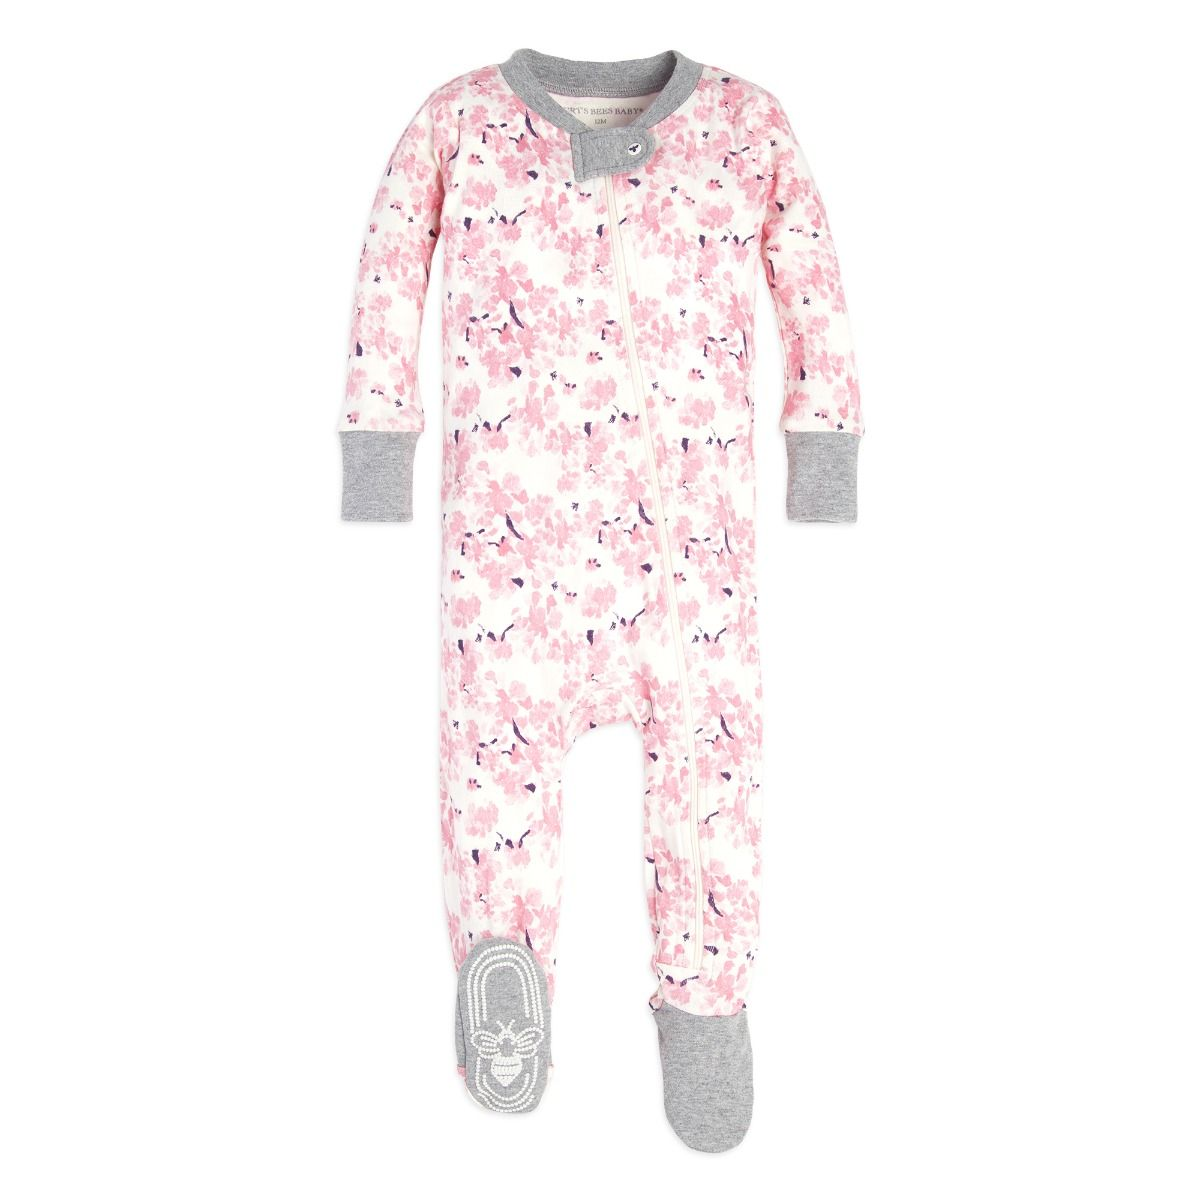 4969d2c6a Waterlily Organic Baby Zip Up Footed Pajamas